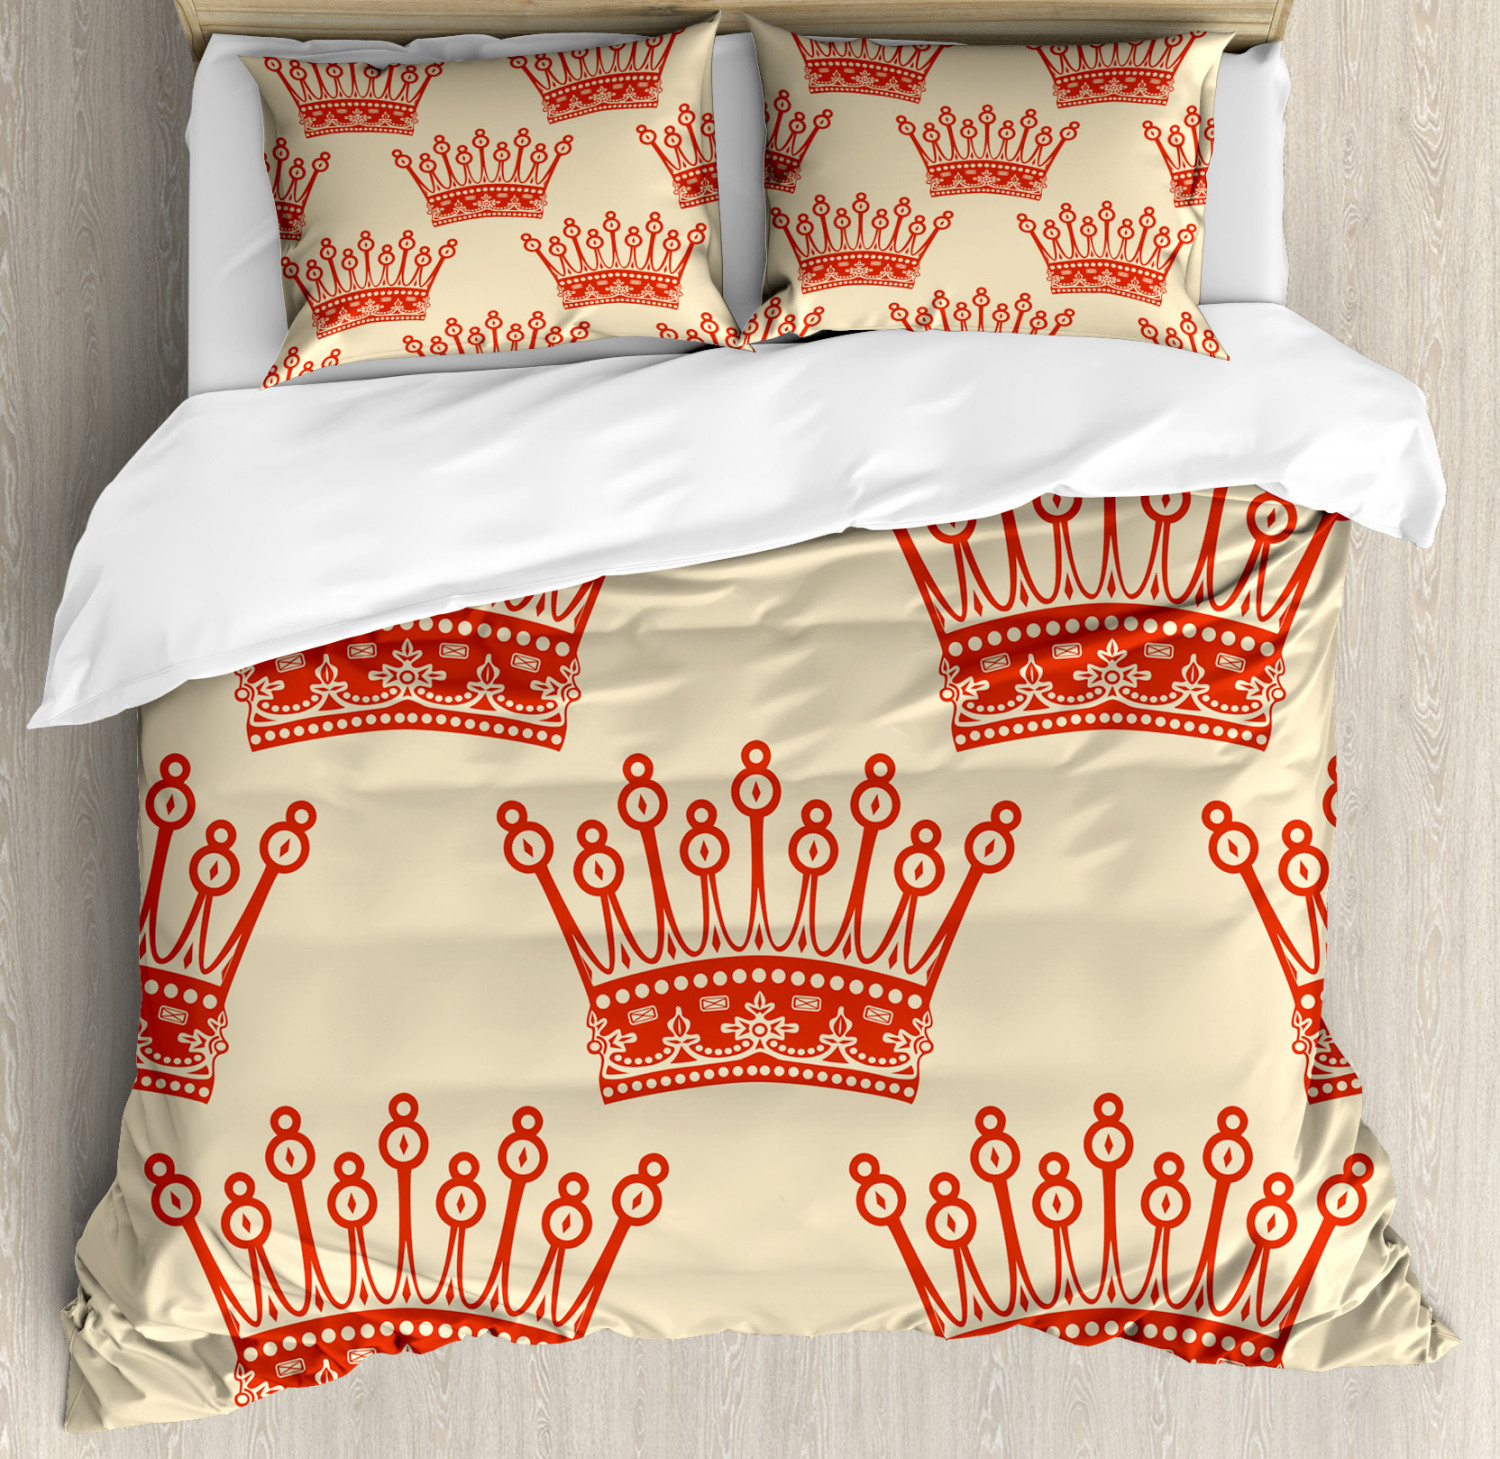 Queen Duvet Cover Set Crowns Pattern In Vintage Design Coronation Imperial Kingdom Nobility Theme Decorative Bedding Set With Pillow Shams Vermilion Sand Brown By Ambesonne Walmart Com Walmart Com